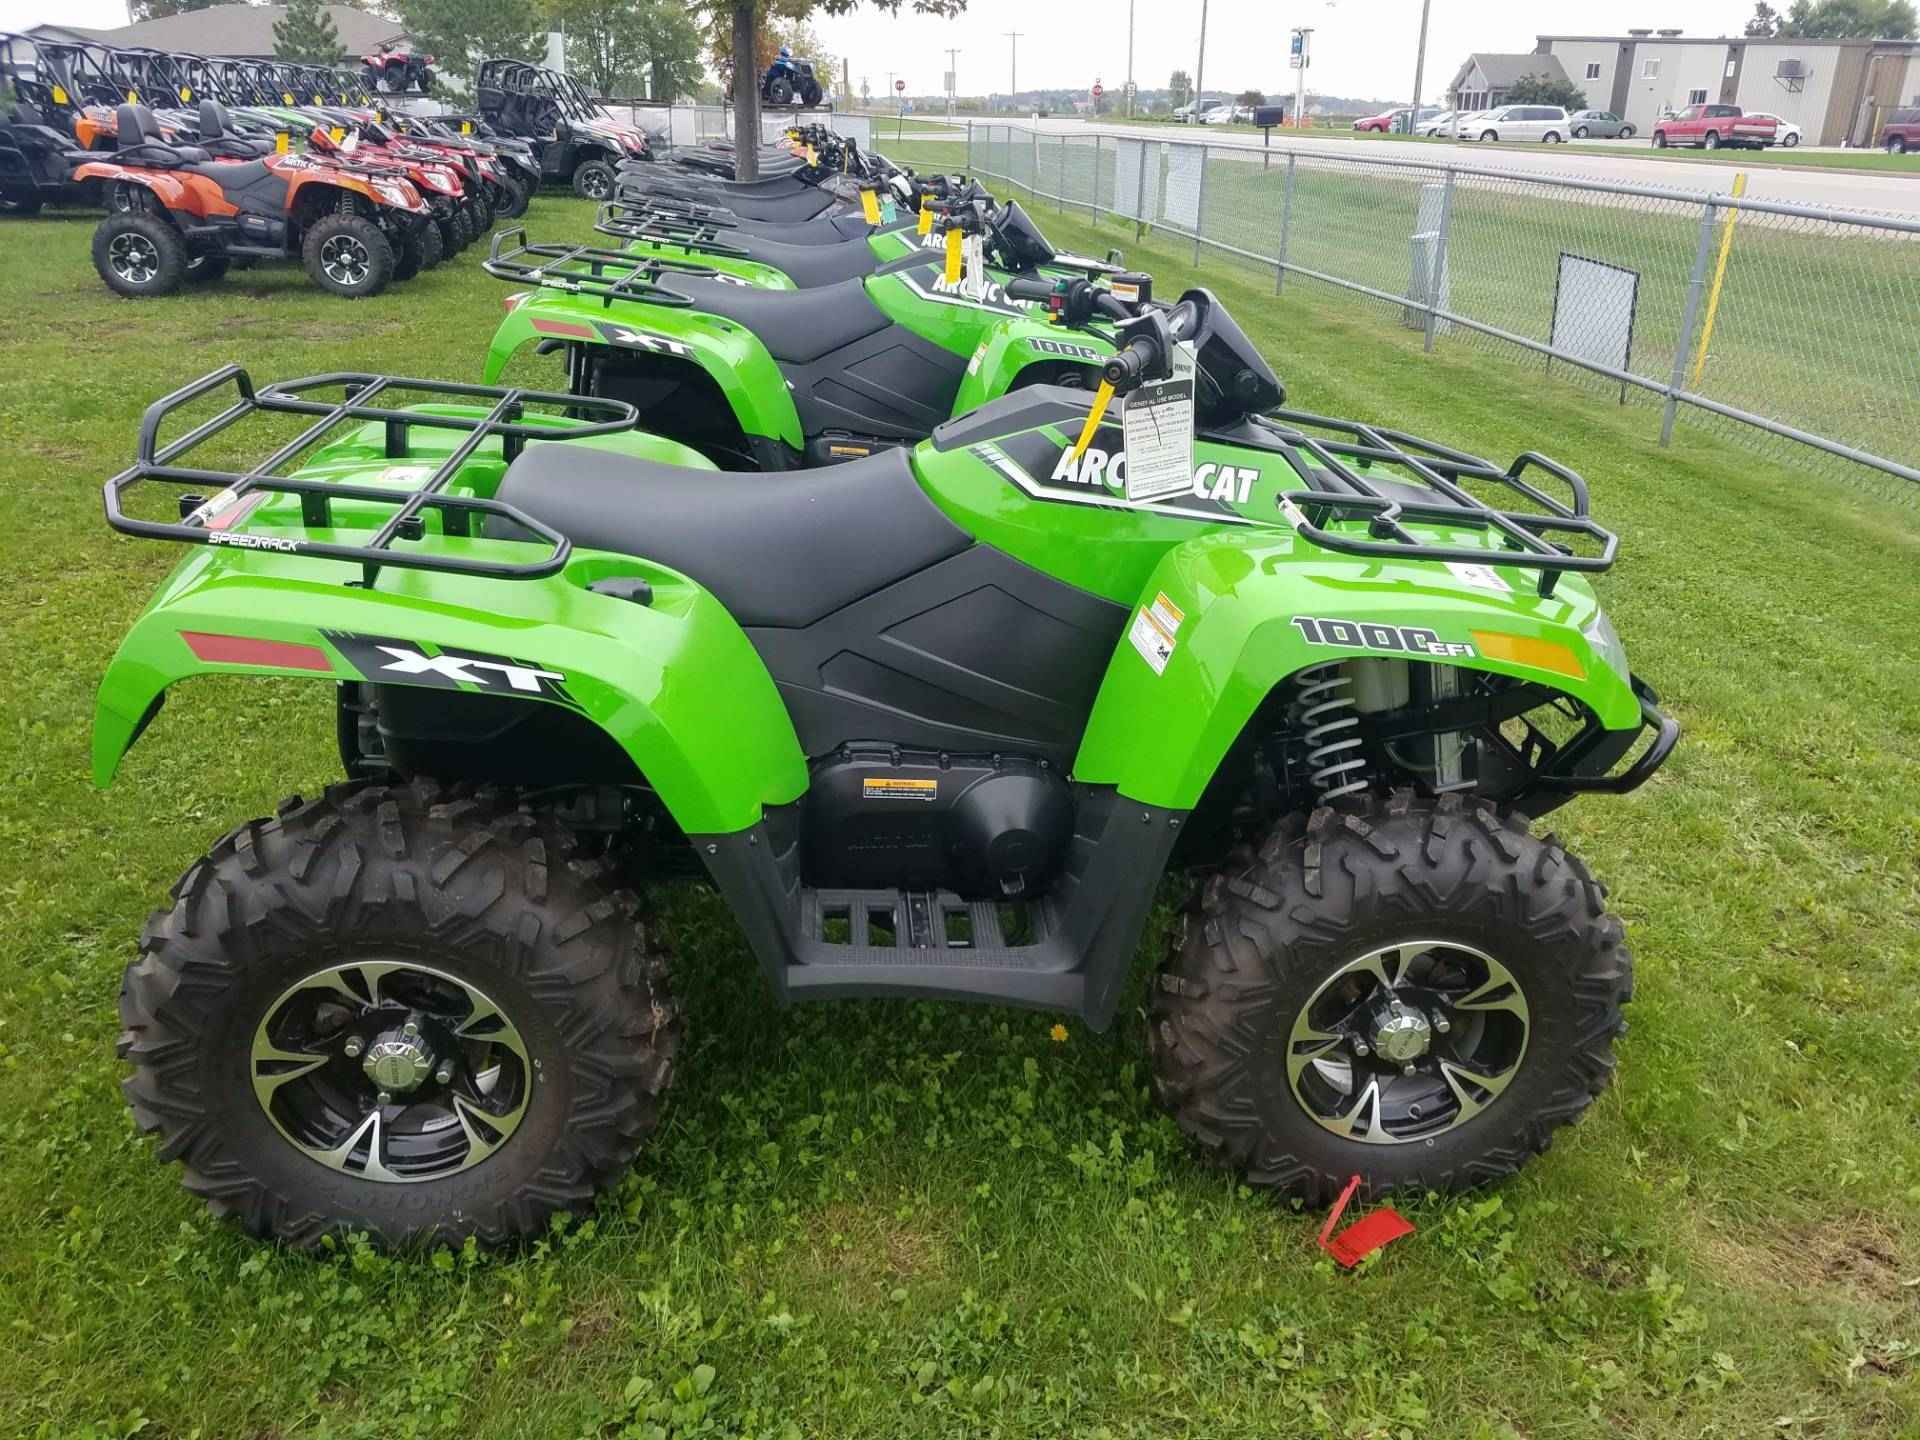 New 2016 Arctic Cat 1000 Xtâ Atvs For Sale In Wisconsin On Atv Trades